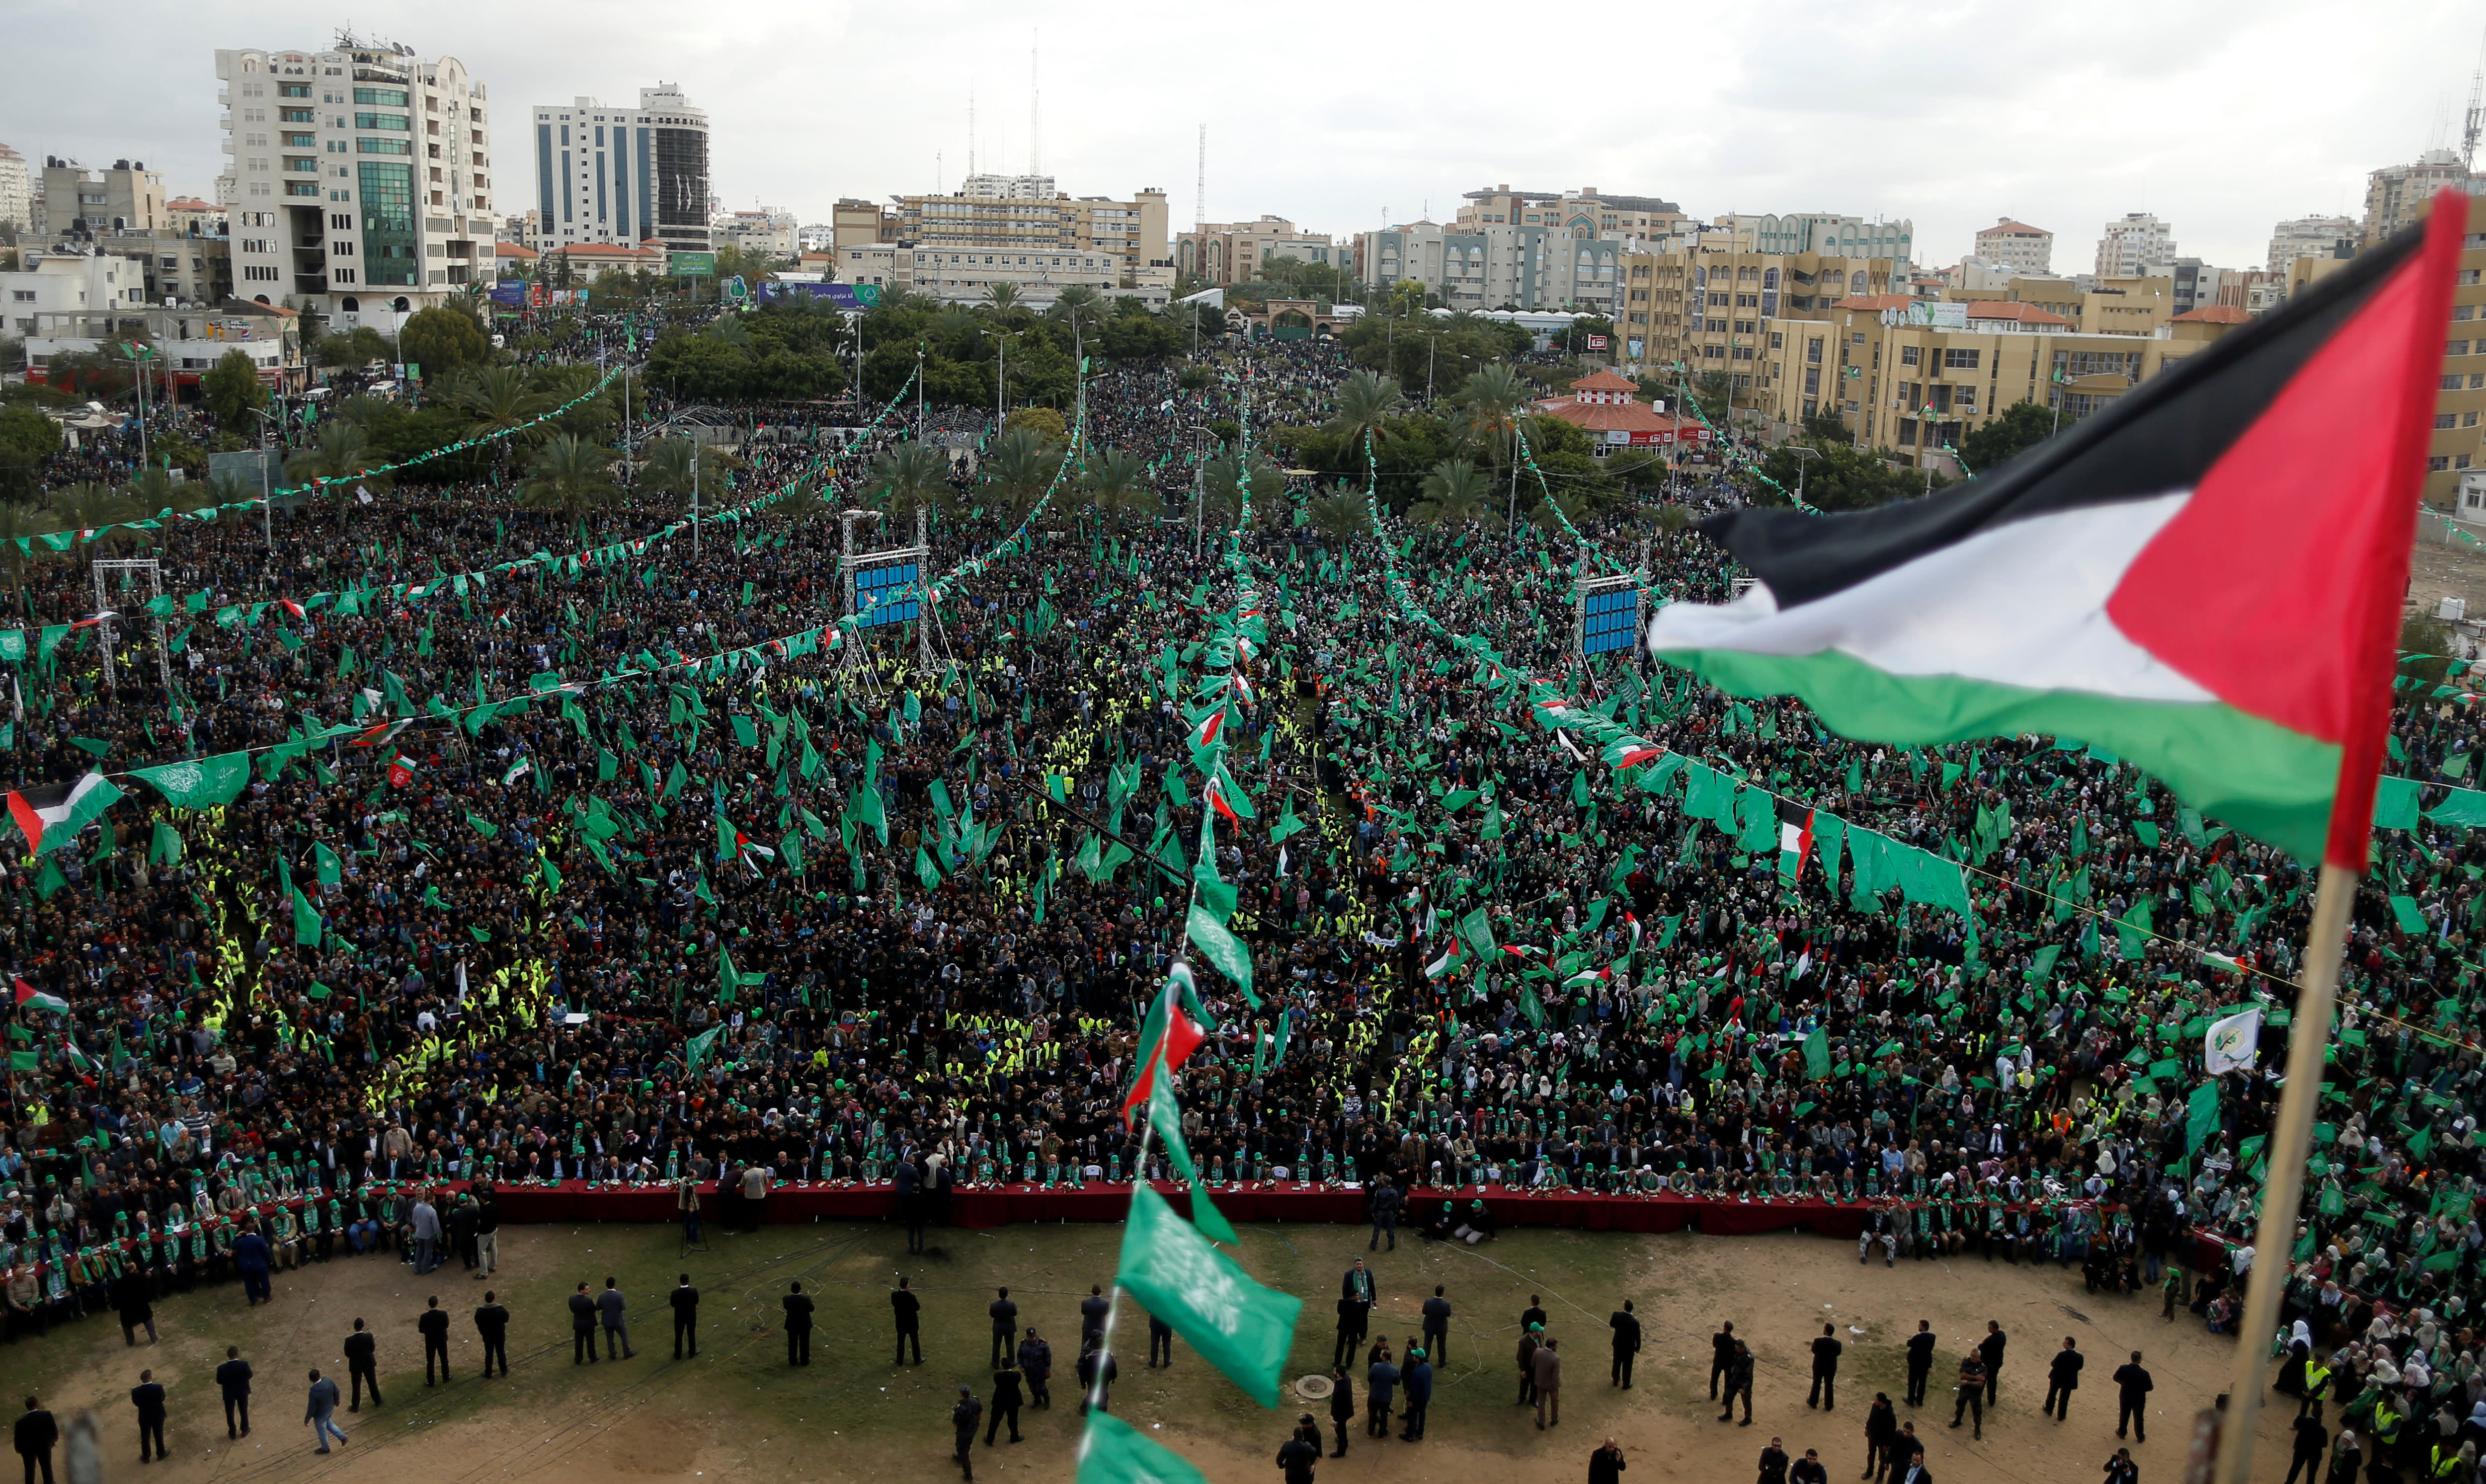 A Palestinian flag flies as Hamas supporters take part in a rally marking the 30th anniversary of Hamas' founding in Gaza City, December 14, 2017 (SUHAIB SALEM / REUTERS)